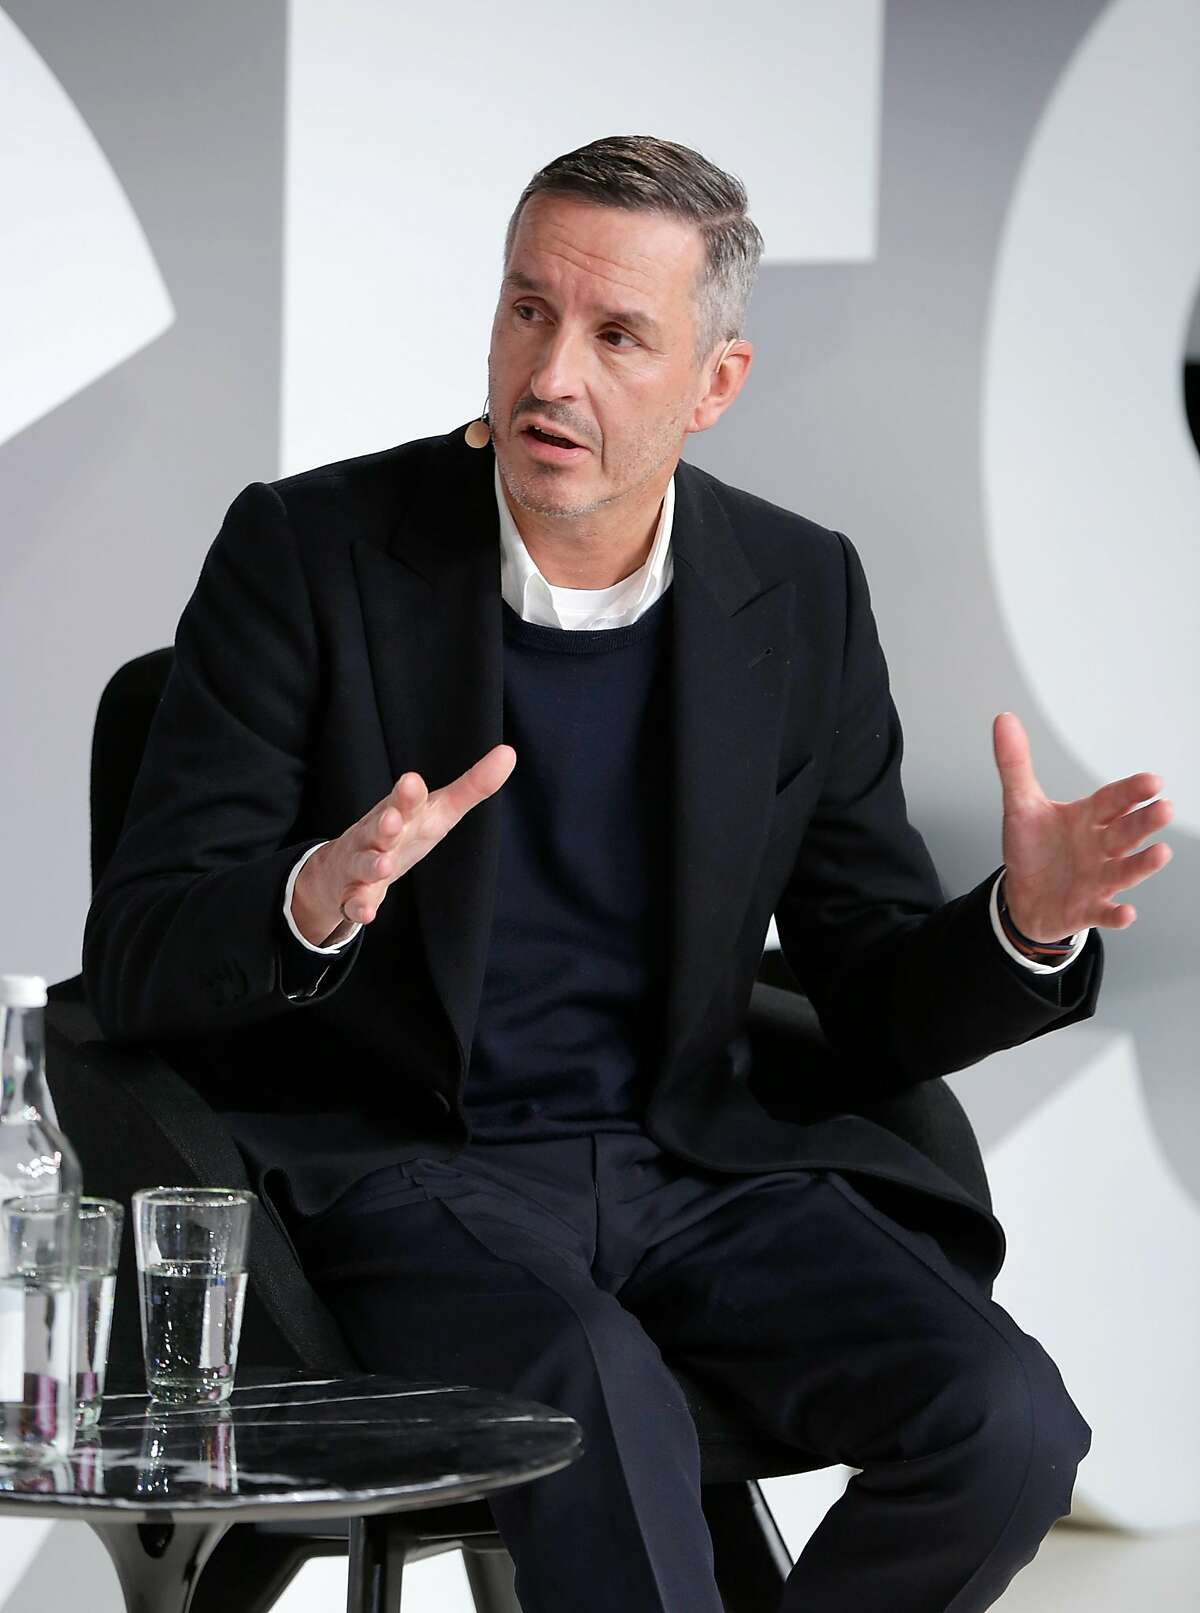 OXFORD, ENGLAND - NOVEMBER 30: Dries Van Noten speaks on stage during #BoFVOICES on November 30, 2017 in Oxford, England. (Photo by John Phillips/Getty Images for The Business of Fashion )